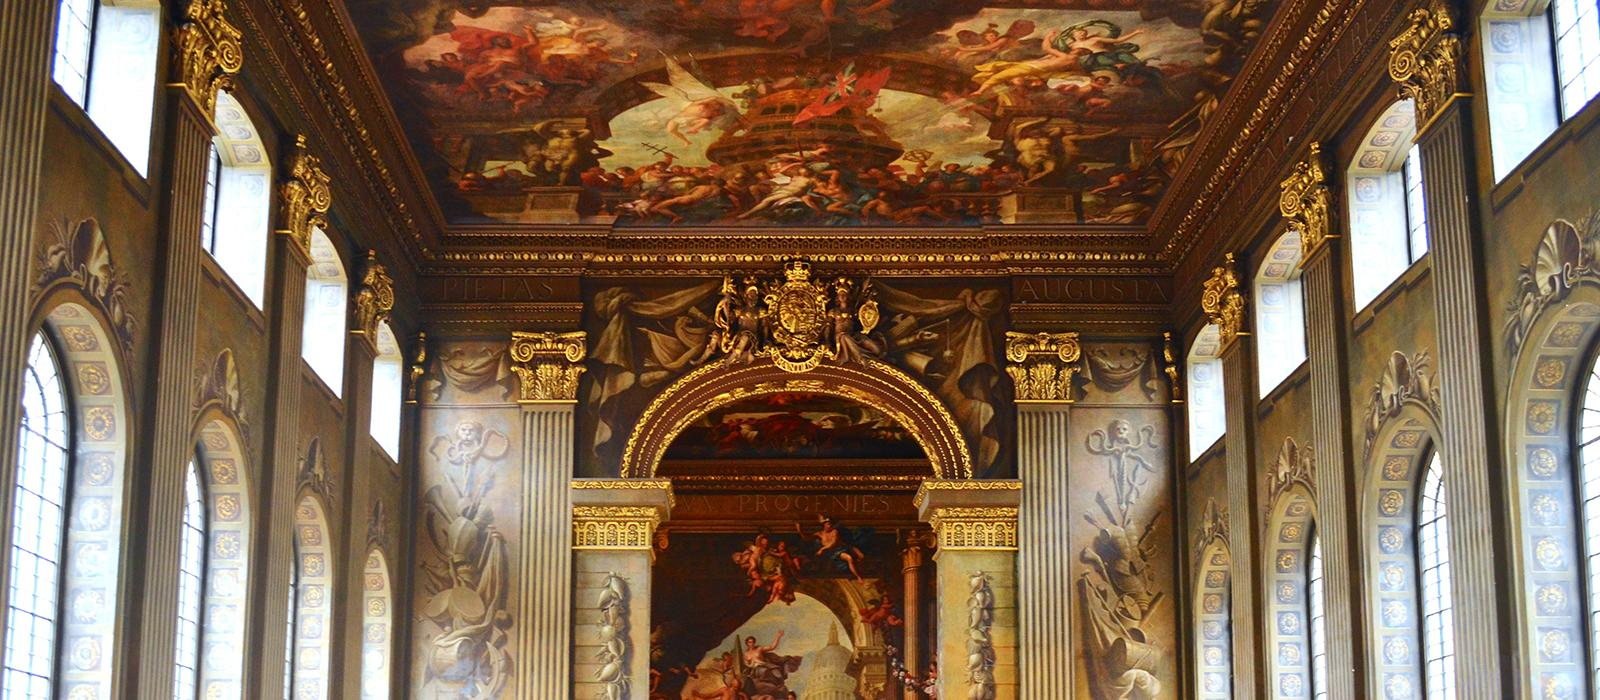 Greenwich Royal Naval College, painted hall